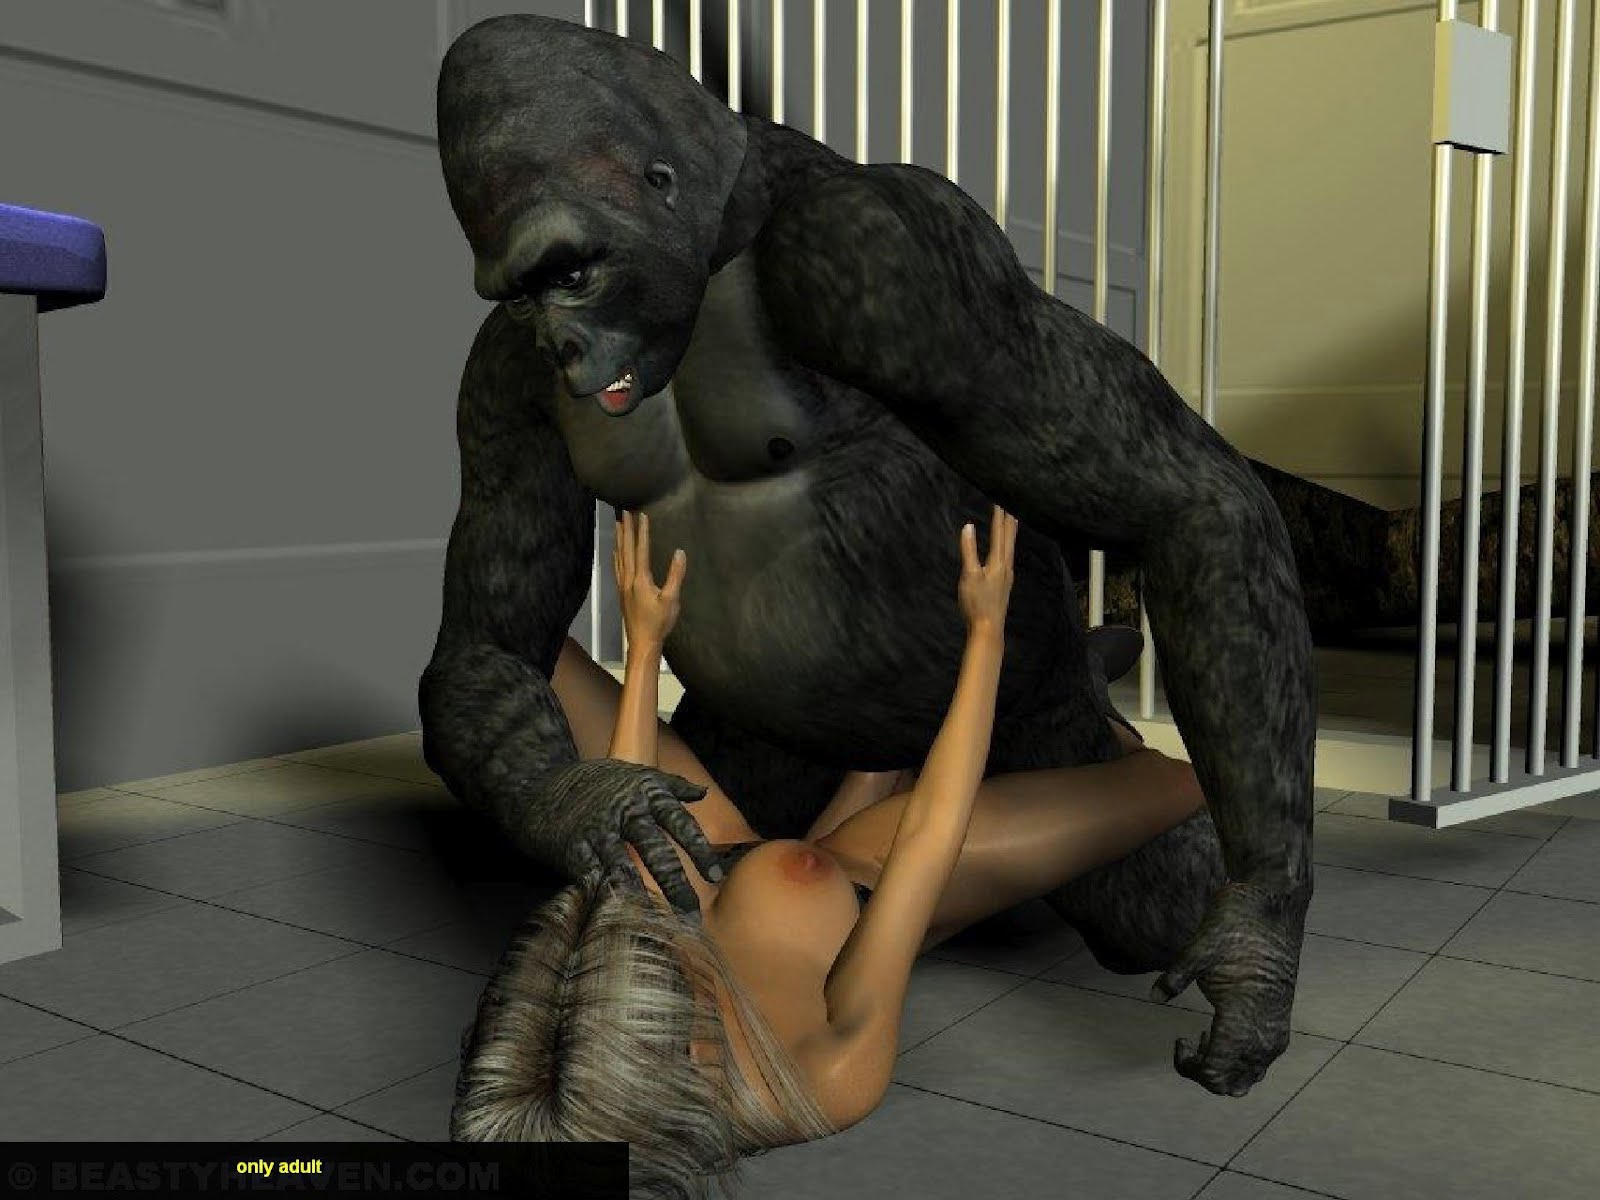 Gorilla and women fucking photo sexy pics